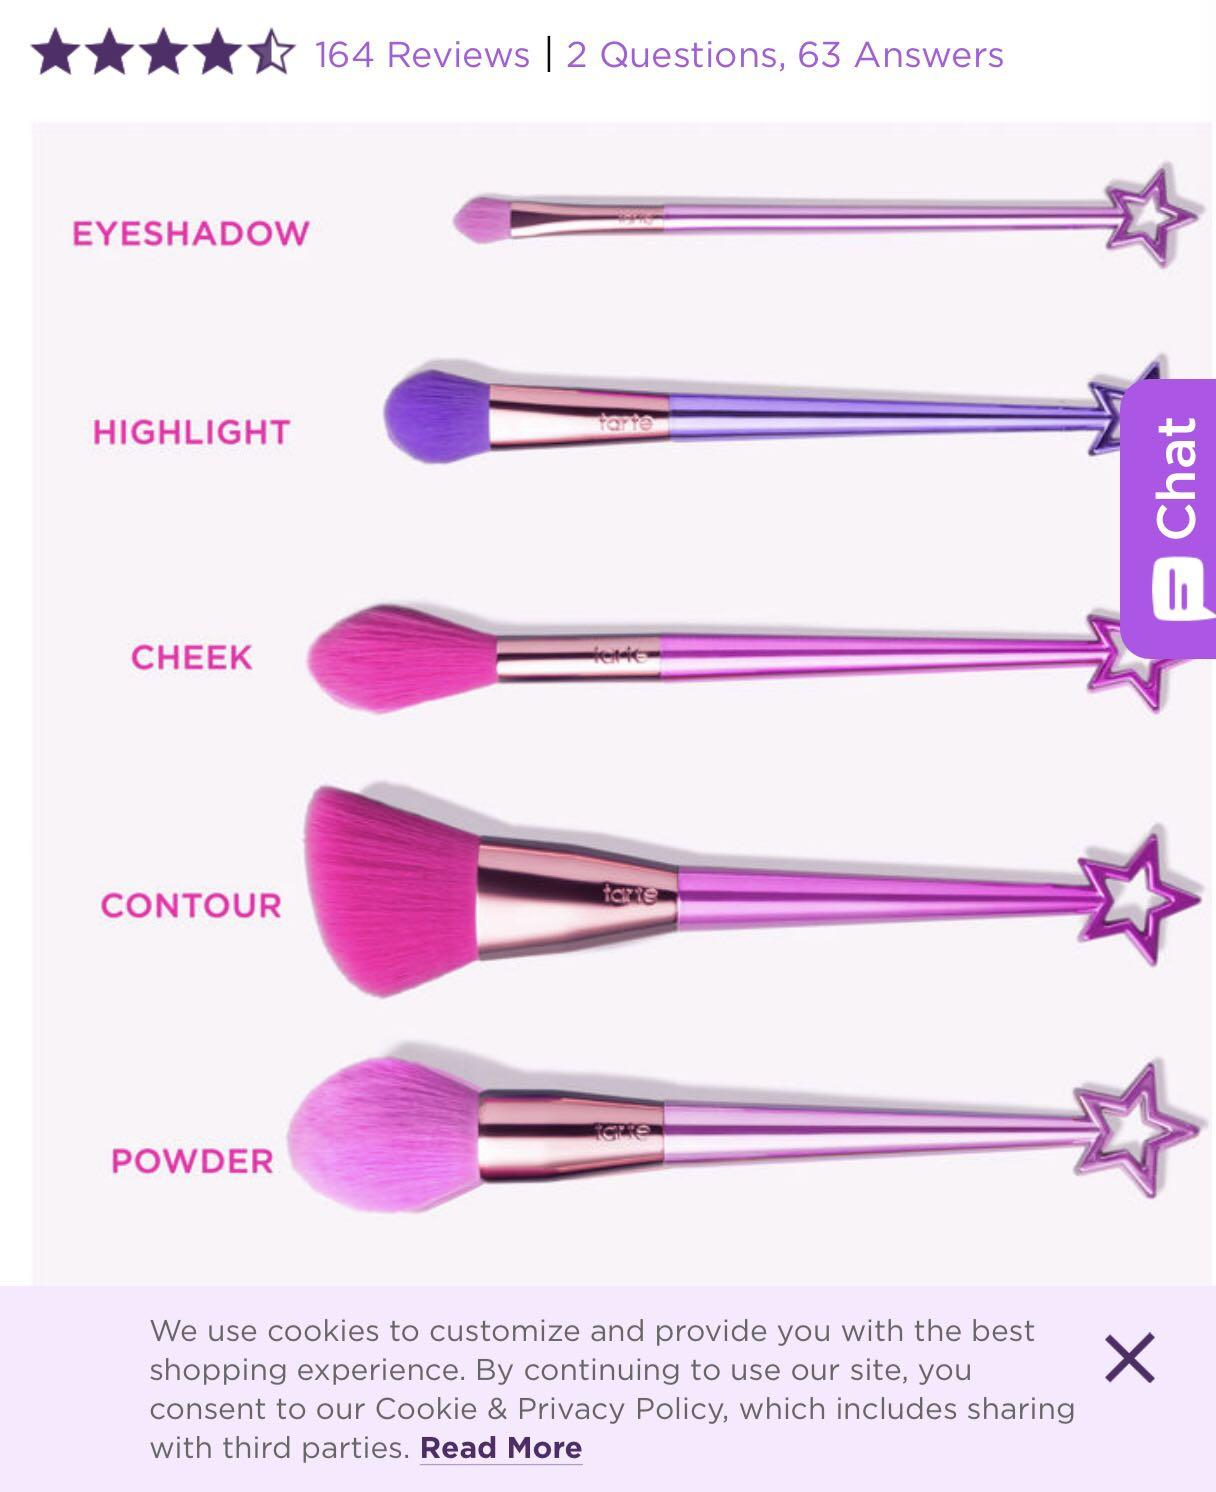 Tarte pretty things and fairy wings brush